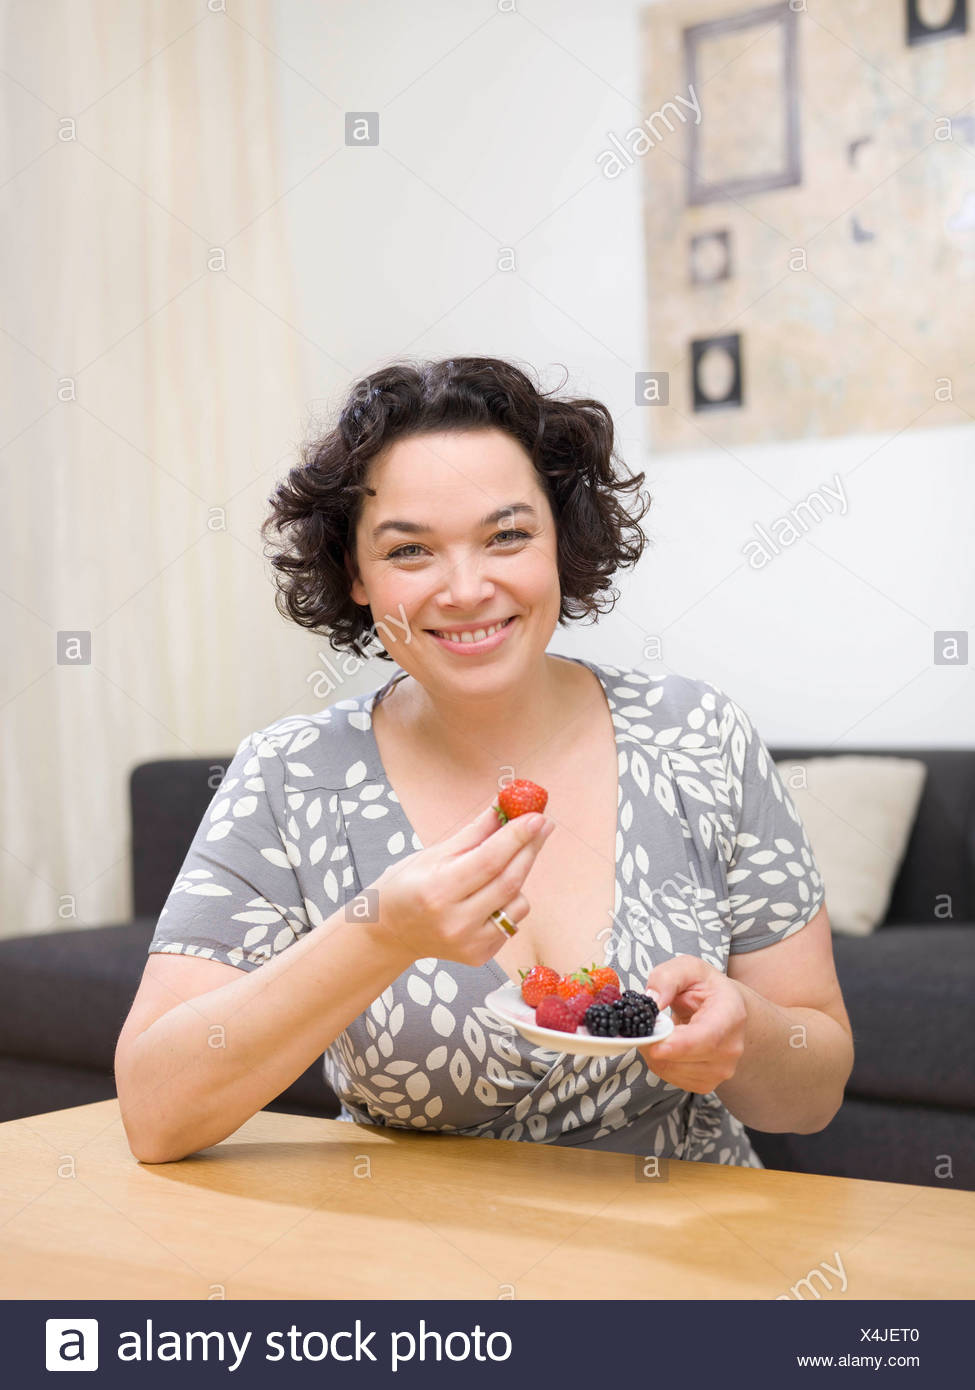 Femme mangeant des fruits. Photo Stock